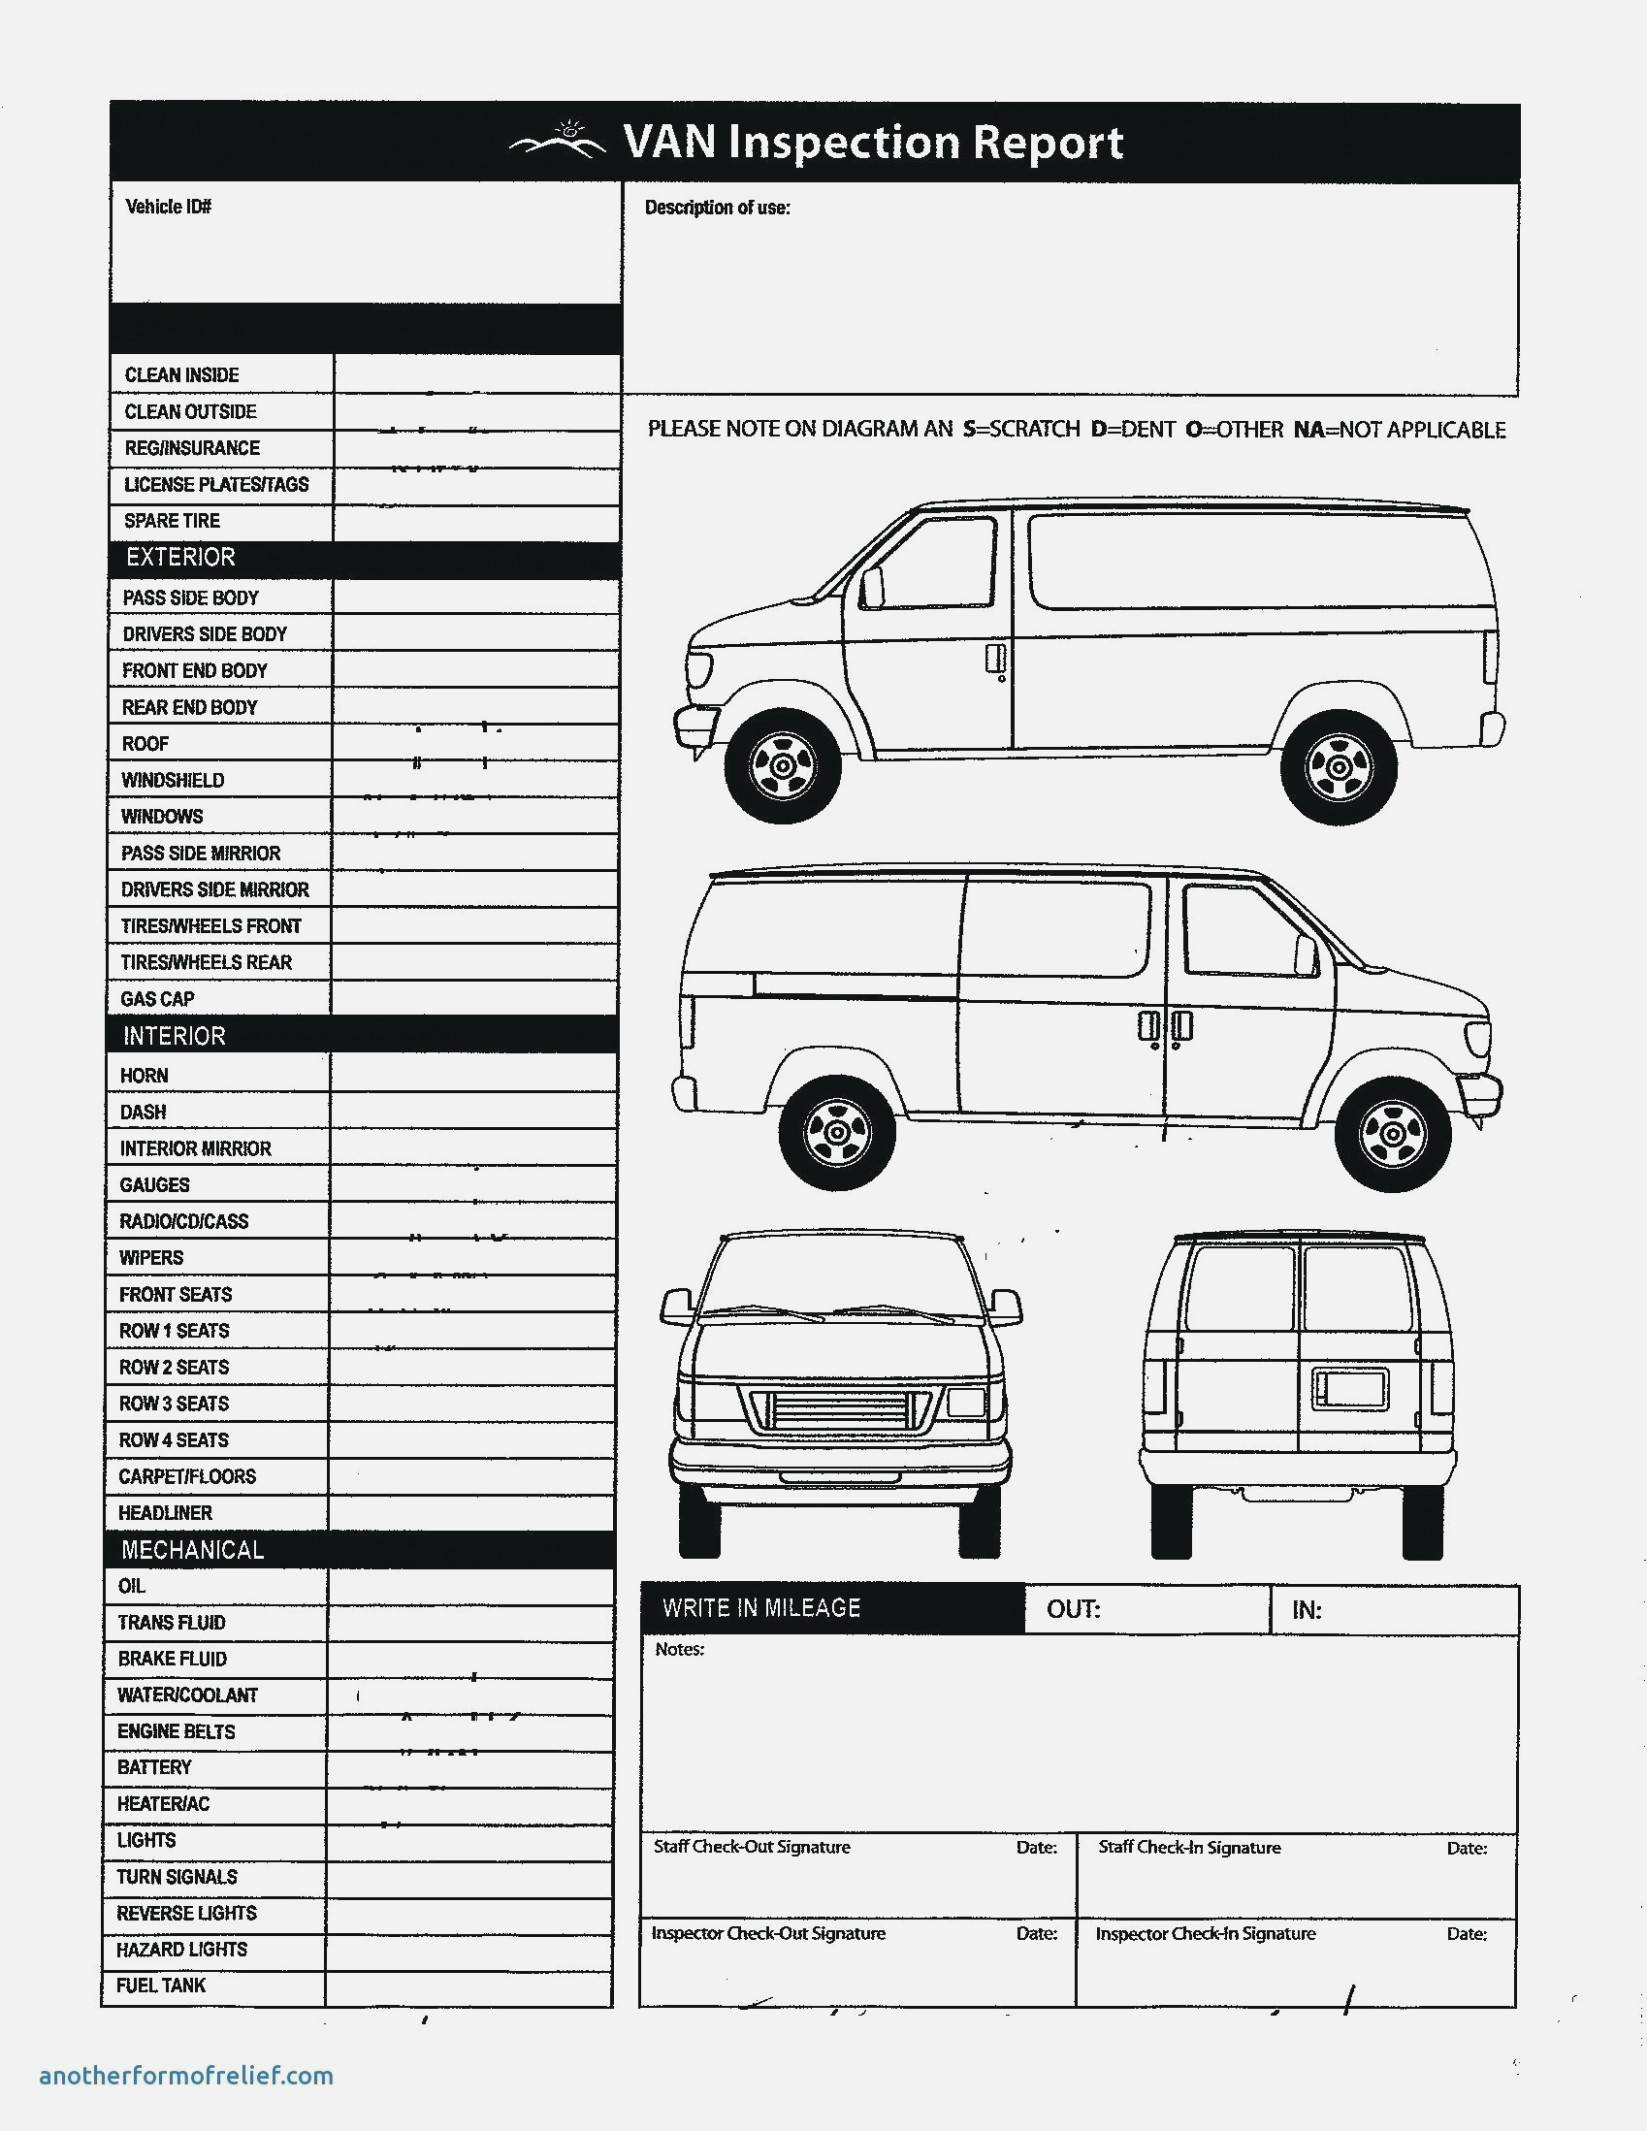 Vehicle Damage Checklist Template